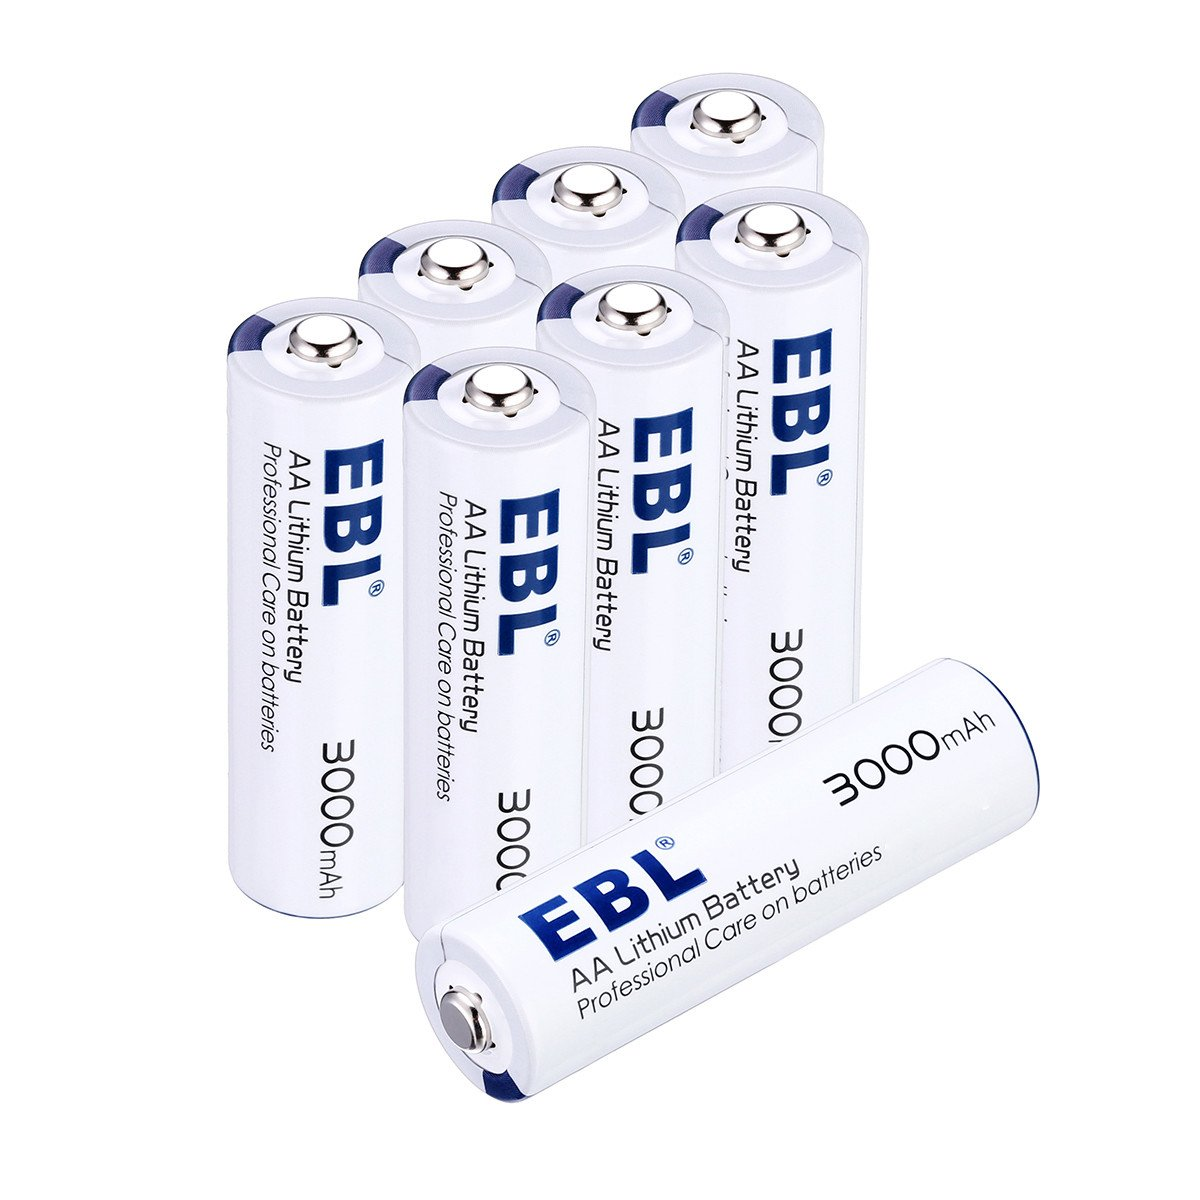 EBL 8 Packs AA Batteries Non-rechargeable, 1.5V Lithium Metal Battery High Capacity for Home Appliances